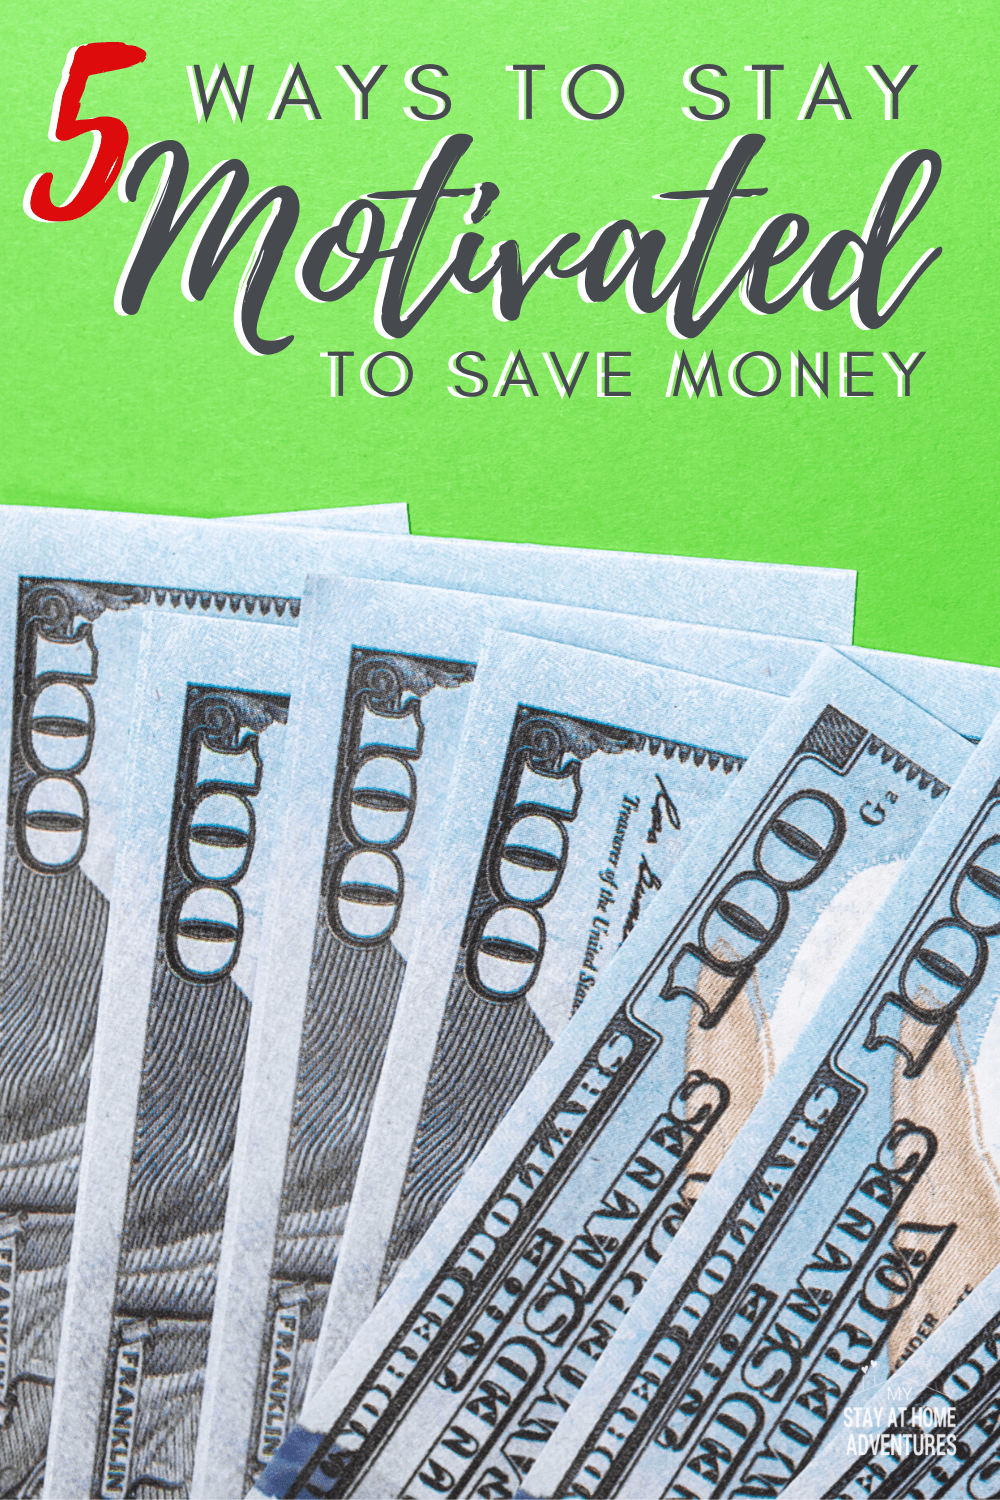 Staying motivated to save money is one of the biggest challenge many faces. Learn five ways to help you stay motivated to save money. #savemoney #motivation #frugalliving #moneysavingtips via @mystayathome